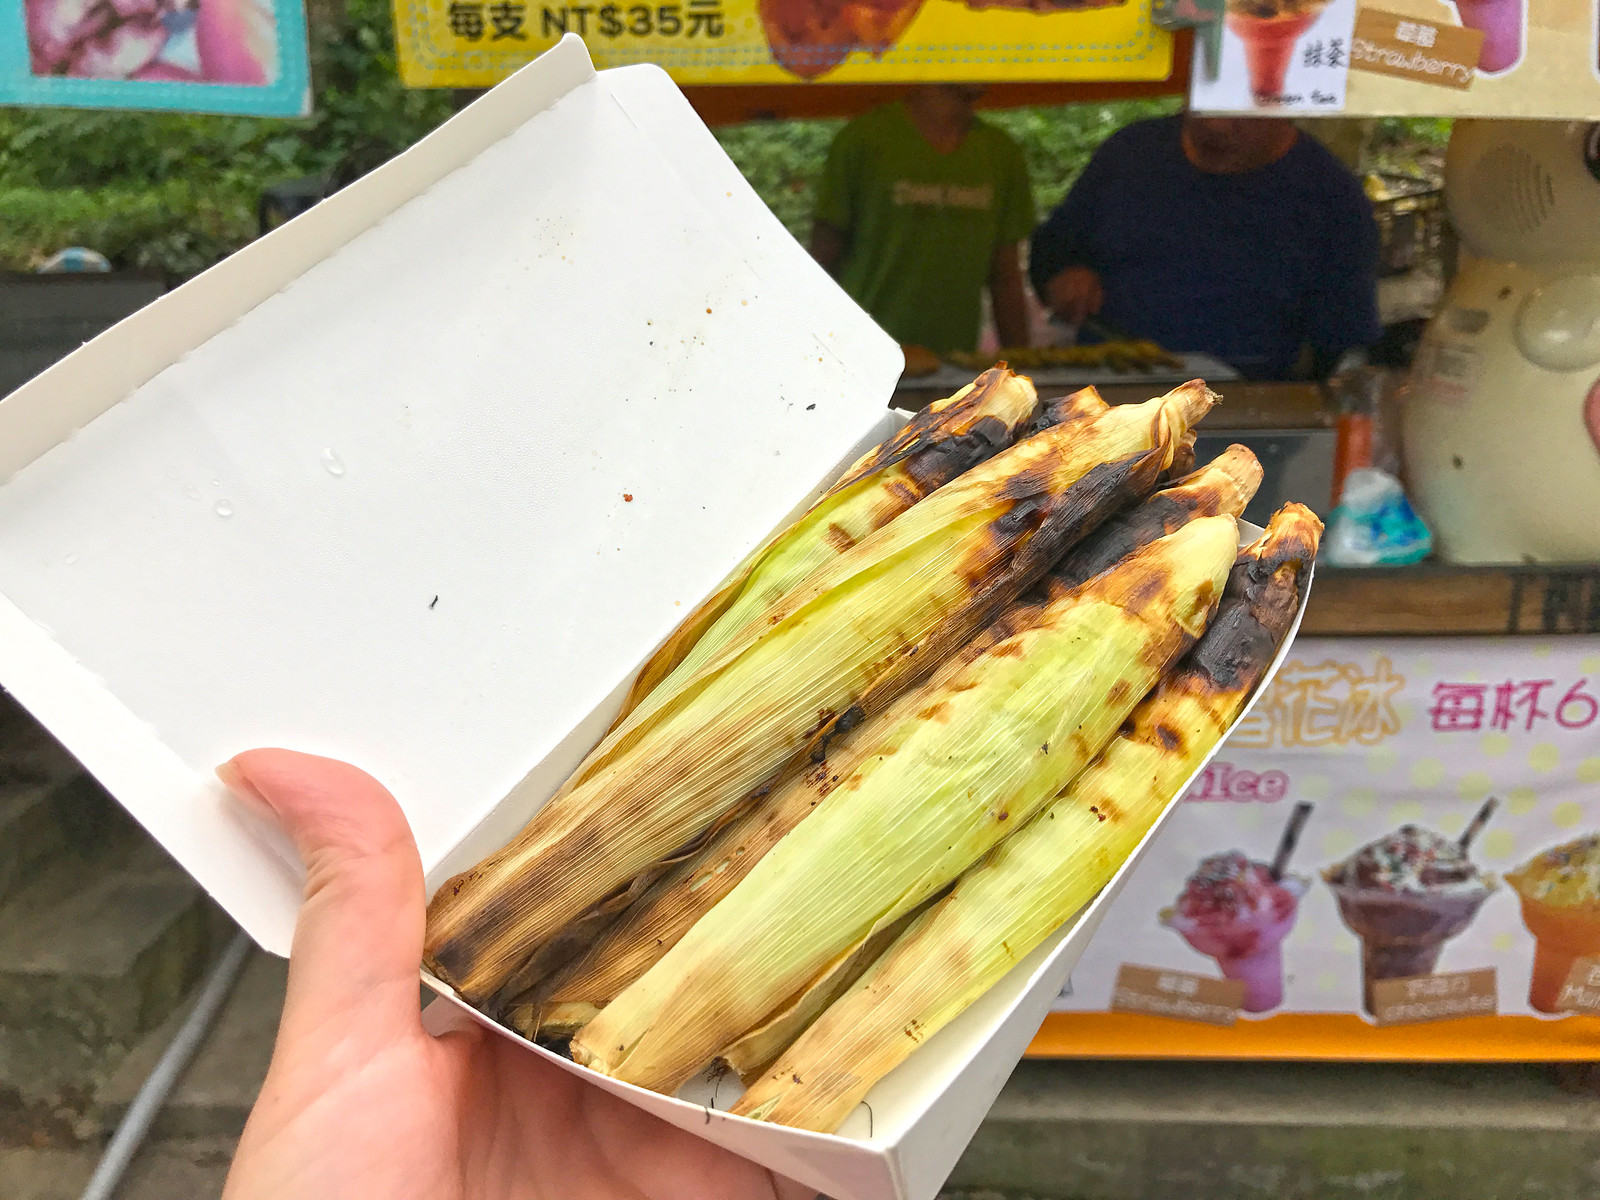 Grilled baby corn